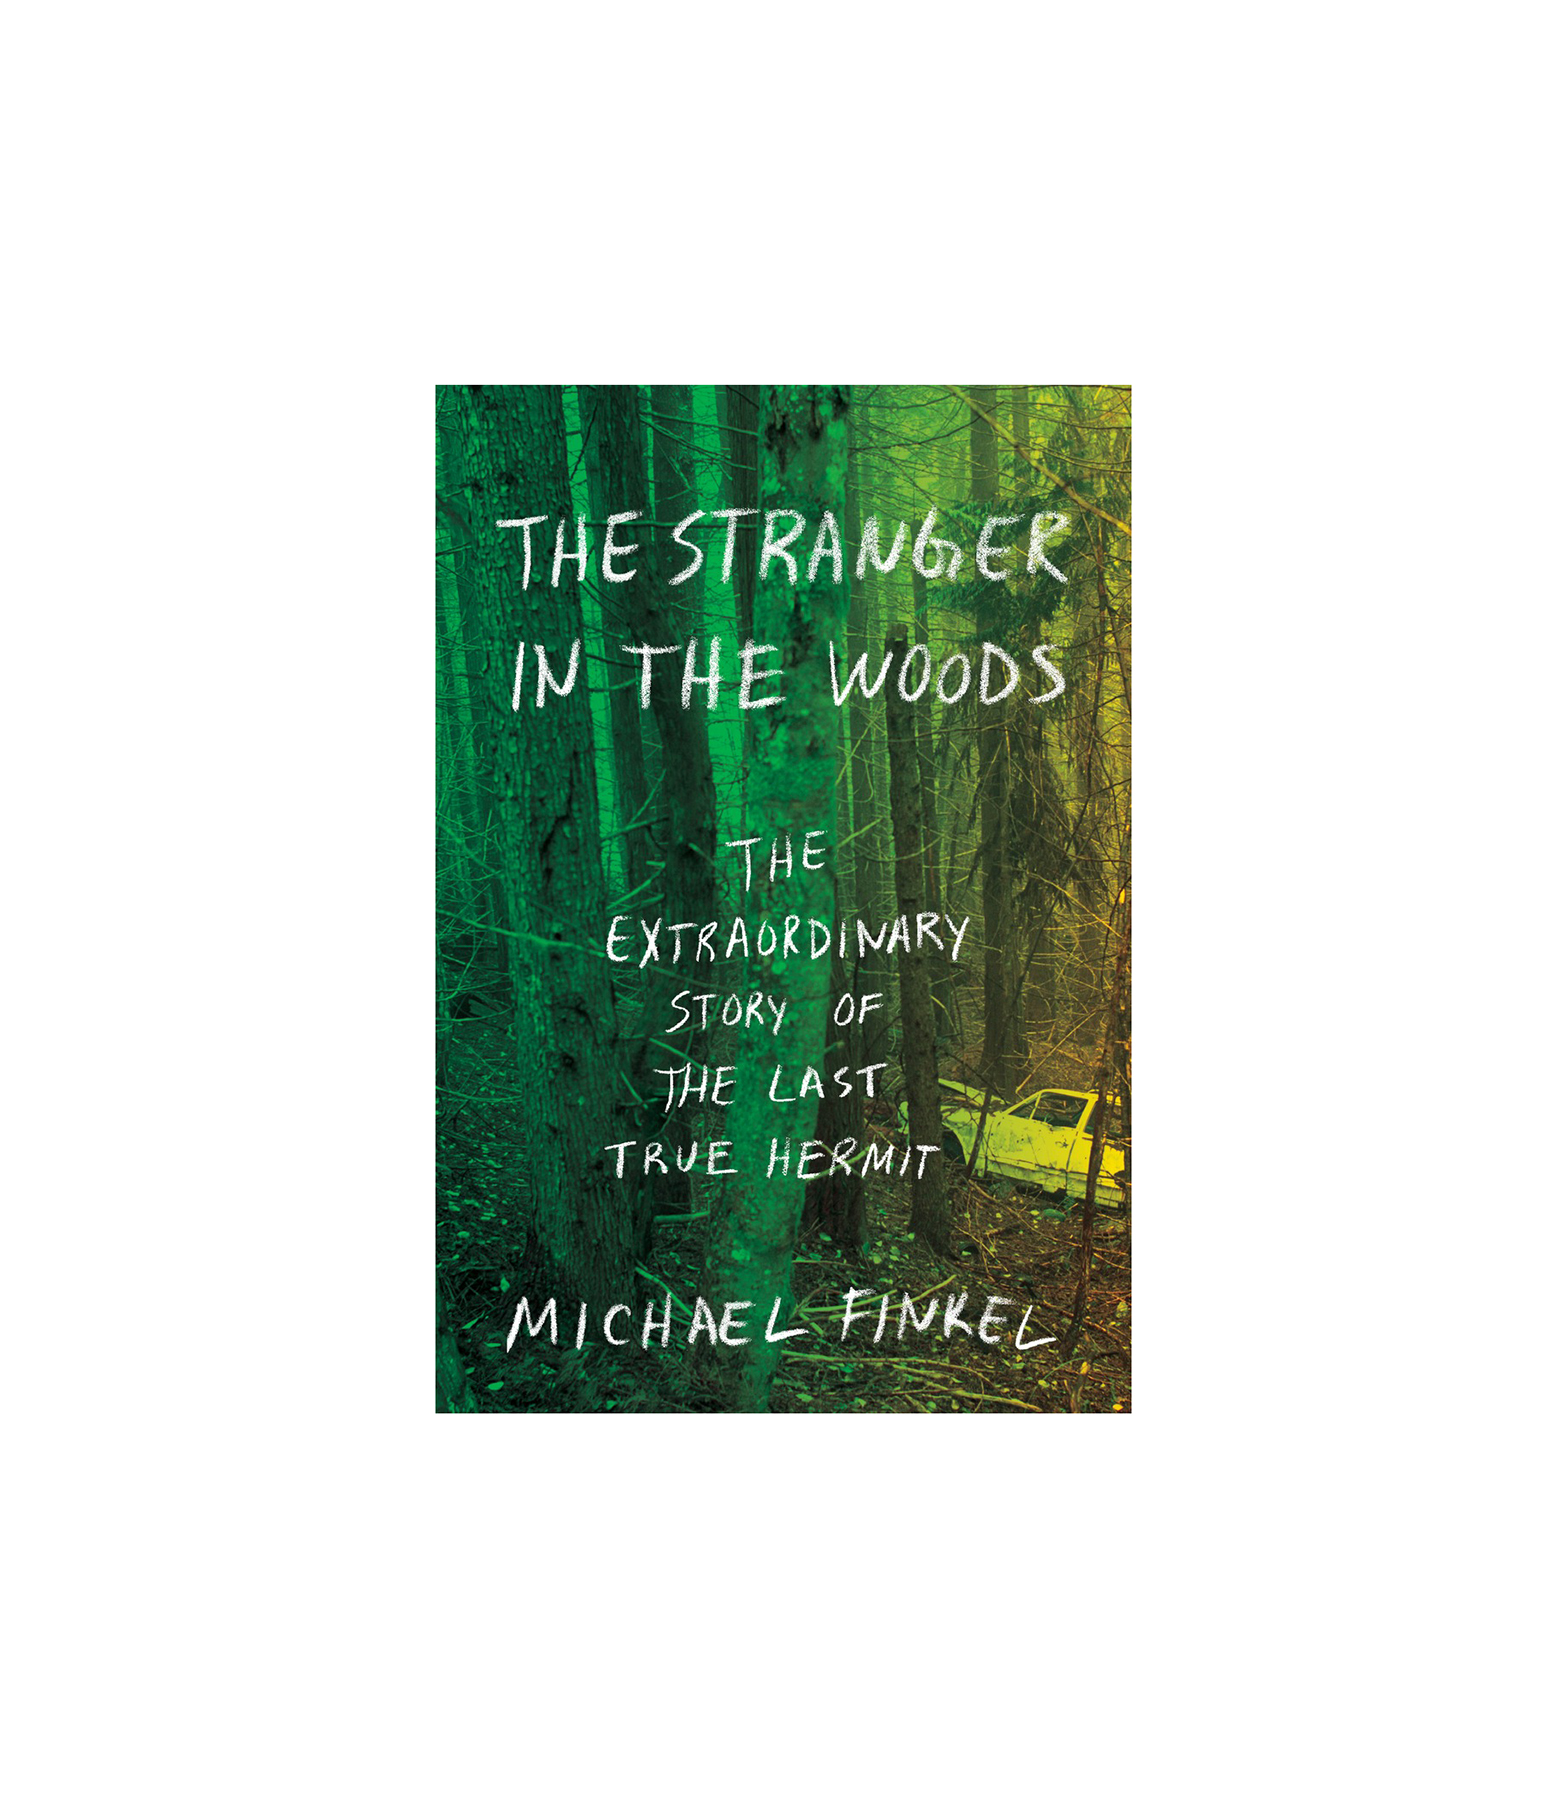 The Stranger In The Woods, by Michael Finkel